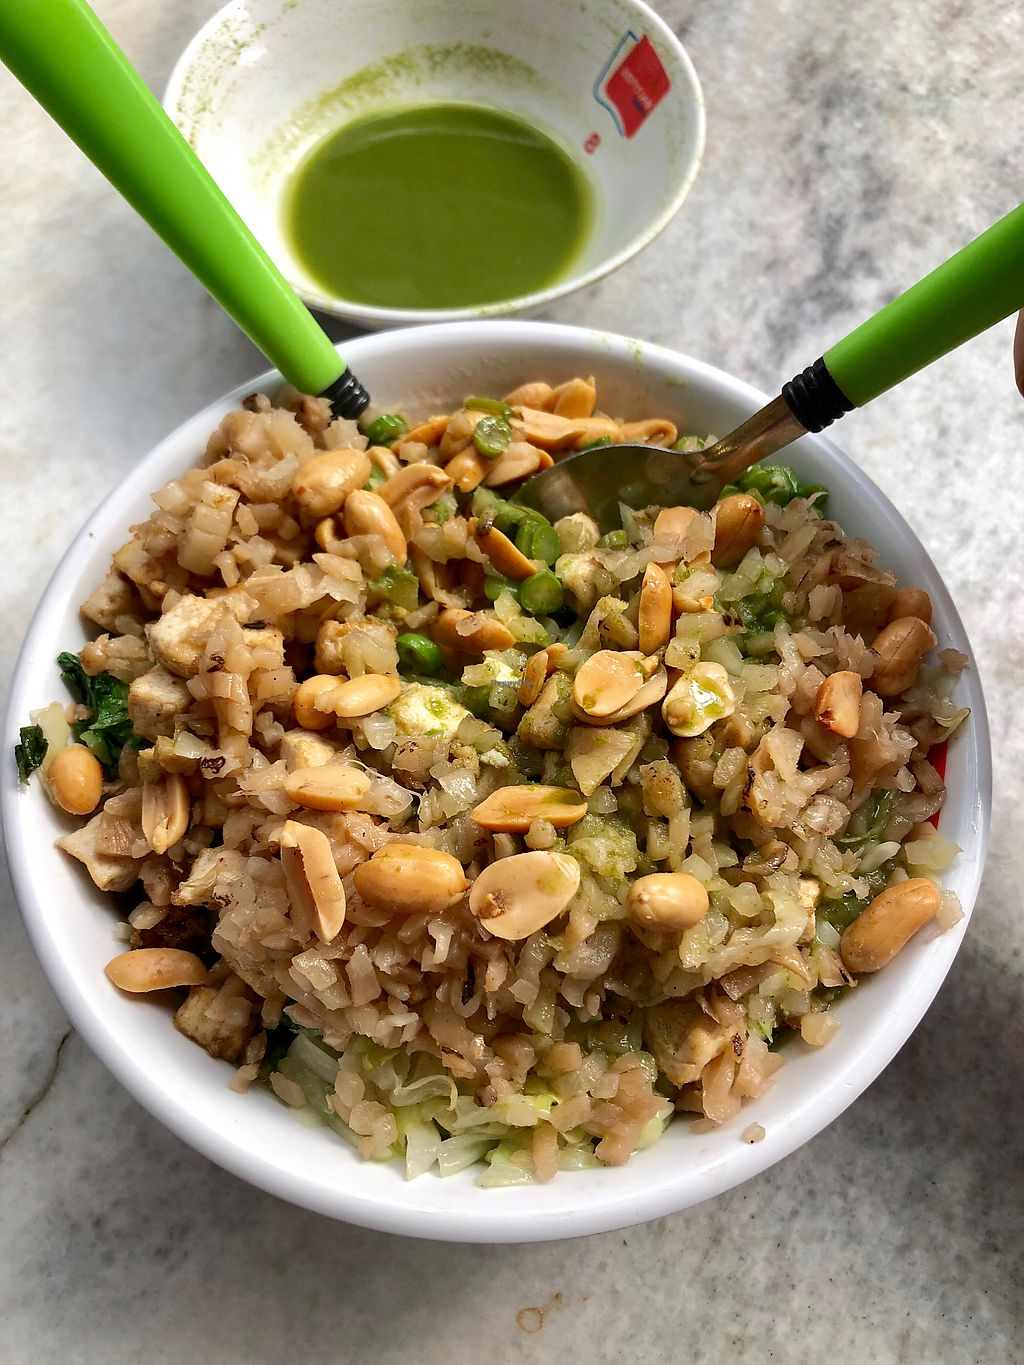 """Photo of Fortune Tree Vegetarian  by <a href=""""/members/profile/CherylQuincy"""">CherylQuincy</a> <br/>Thunder tea rice (upsized) <br/> February 6, 2018  - <a href='/contact/abuse/image/80849/355519'>Report</a>"""